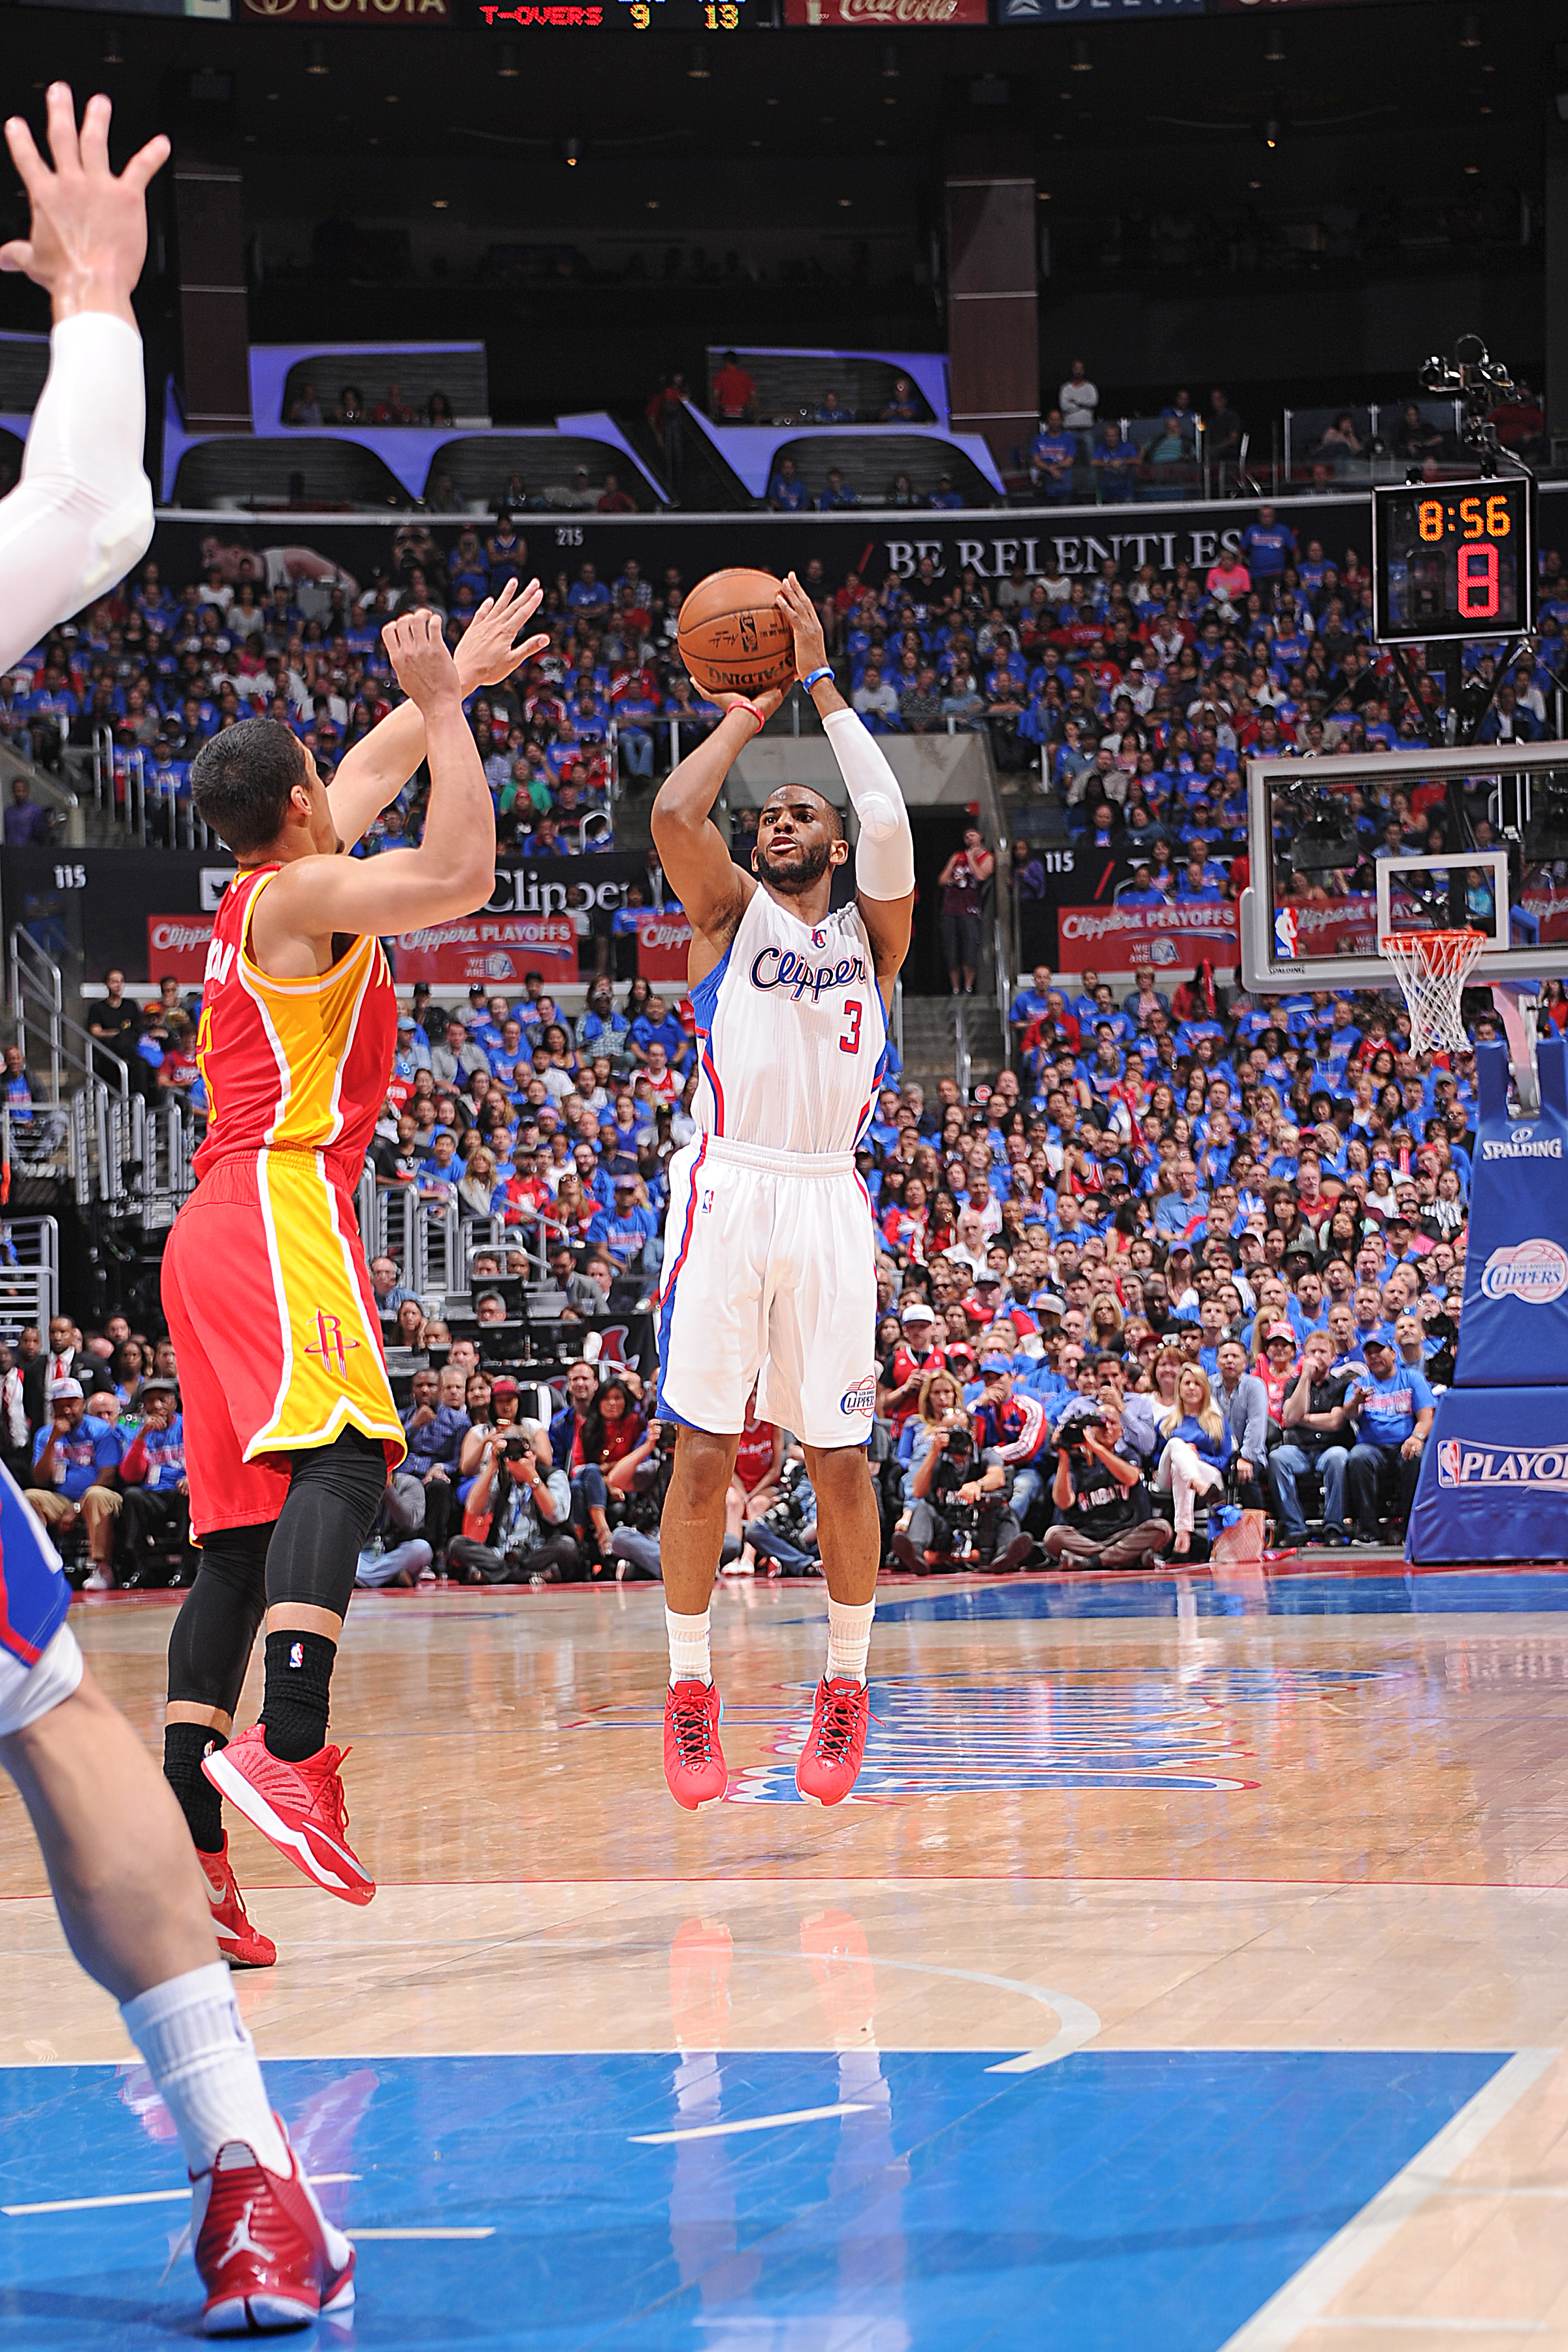 LOS ANGELES, CA - MAY 10:  Chris Paul #3 of the Los Angeles Clippers shoots the ball against the Houston Rockets in Game Four of the Western Conference Semifinals during the 2015 NBA Playoffs on May 10, 2015 at STAPLES Center in Los Angeles, California. (